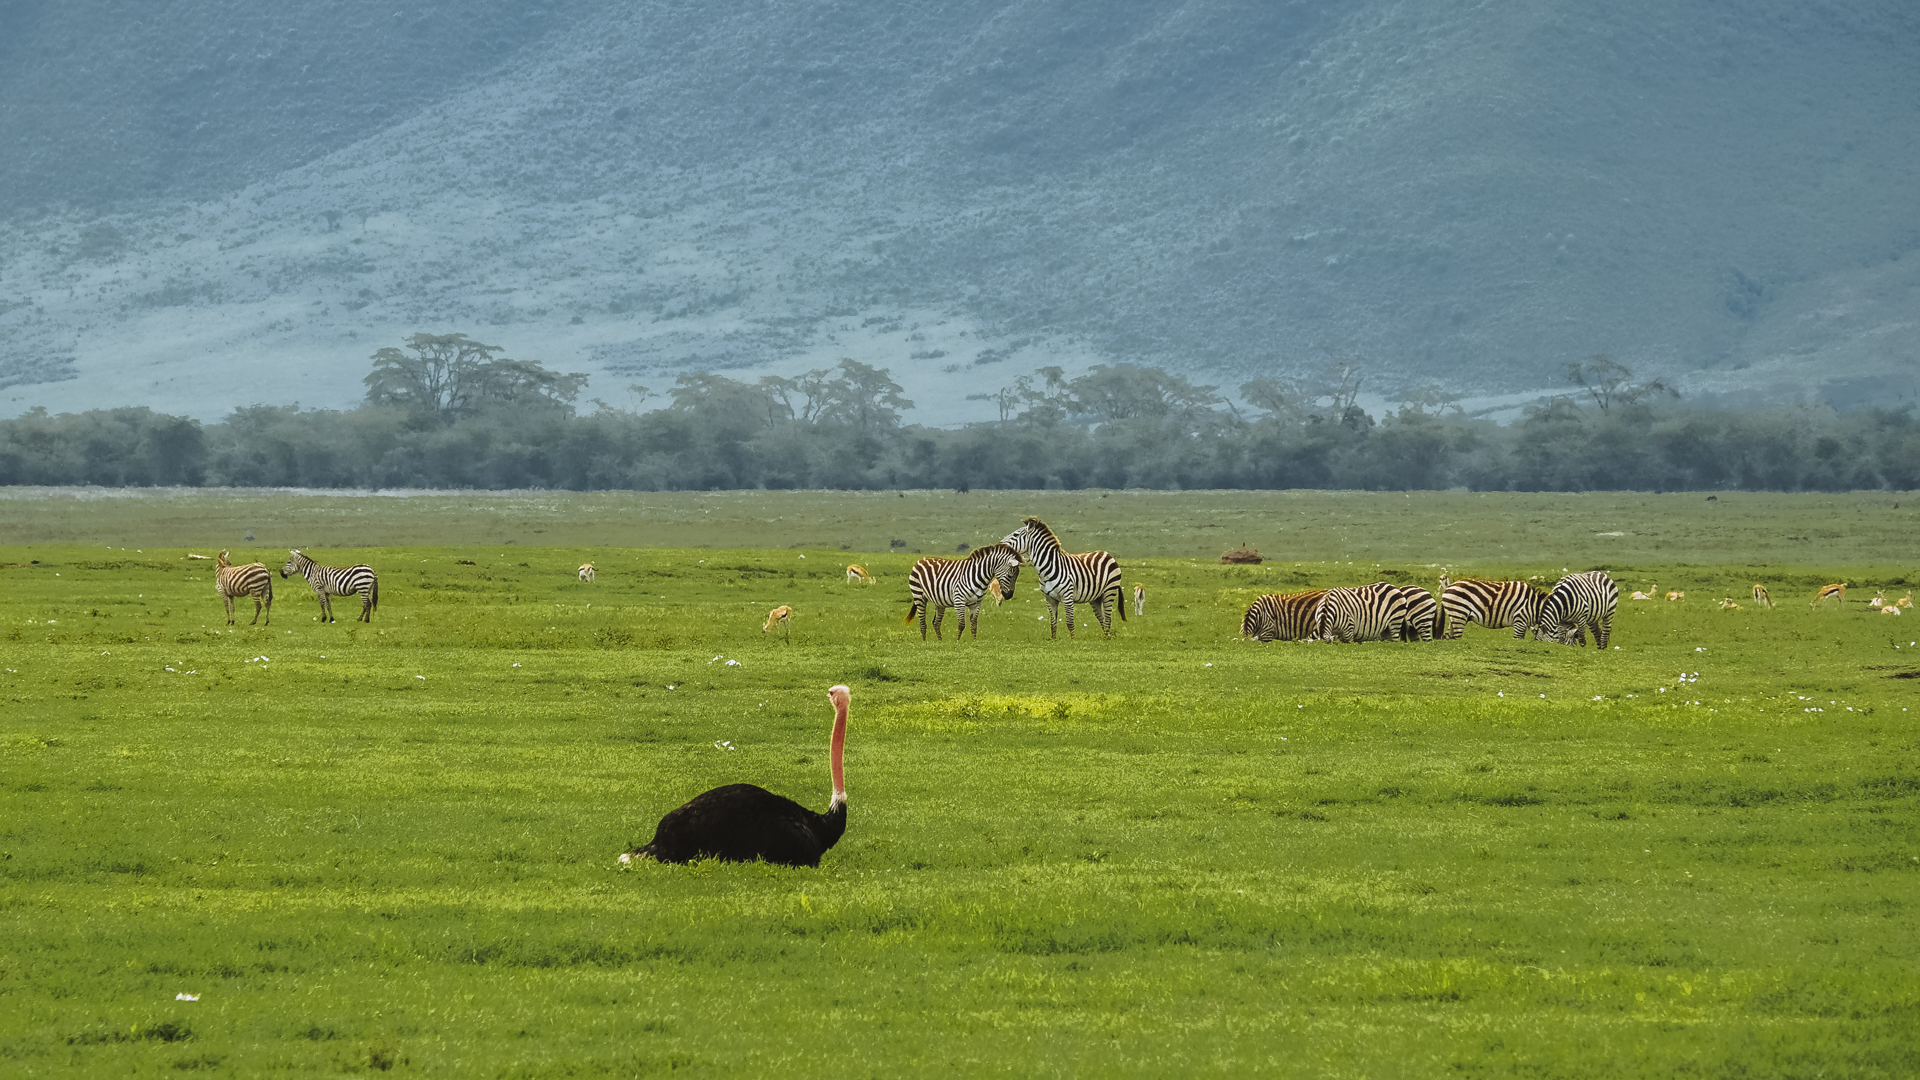 If you're worried about not spotting any animals on your safari, come to Ngorongoro, they are everywhere.